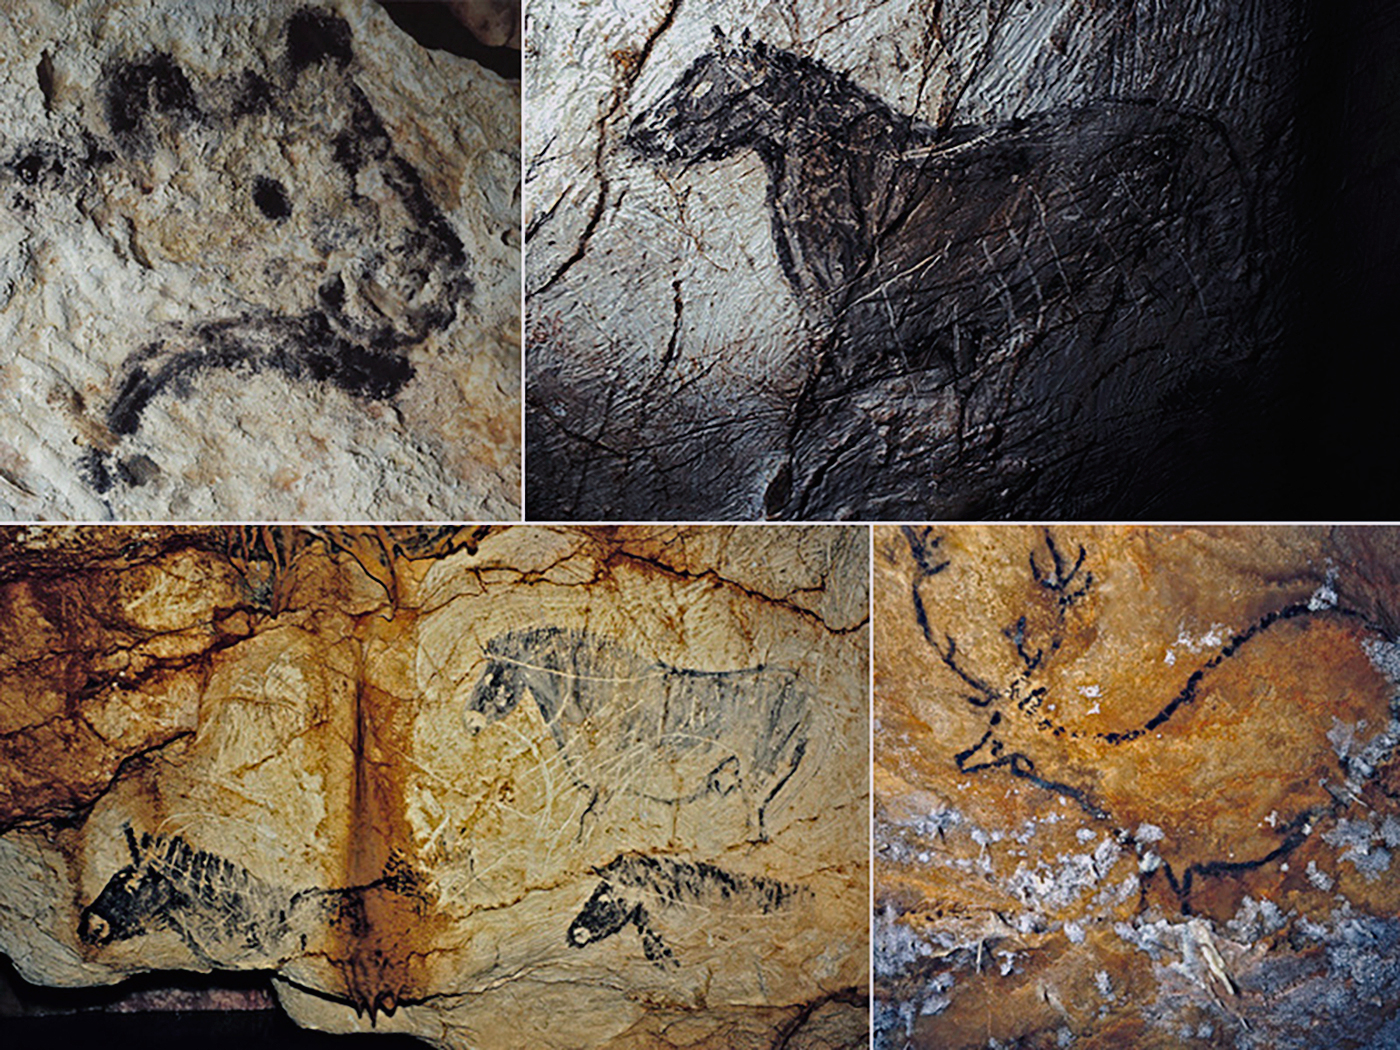 cosquer cave essay Ples of upper palaeolithic cave art known to archaeology  summary of  thematic, stylistic and technical aspects of chauvet's art, and the  gargas,  cosquer.